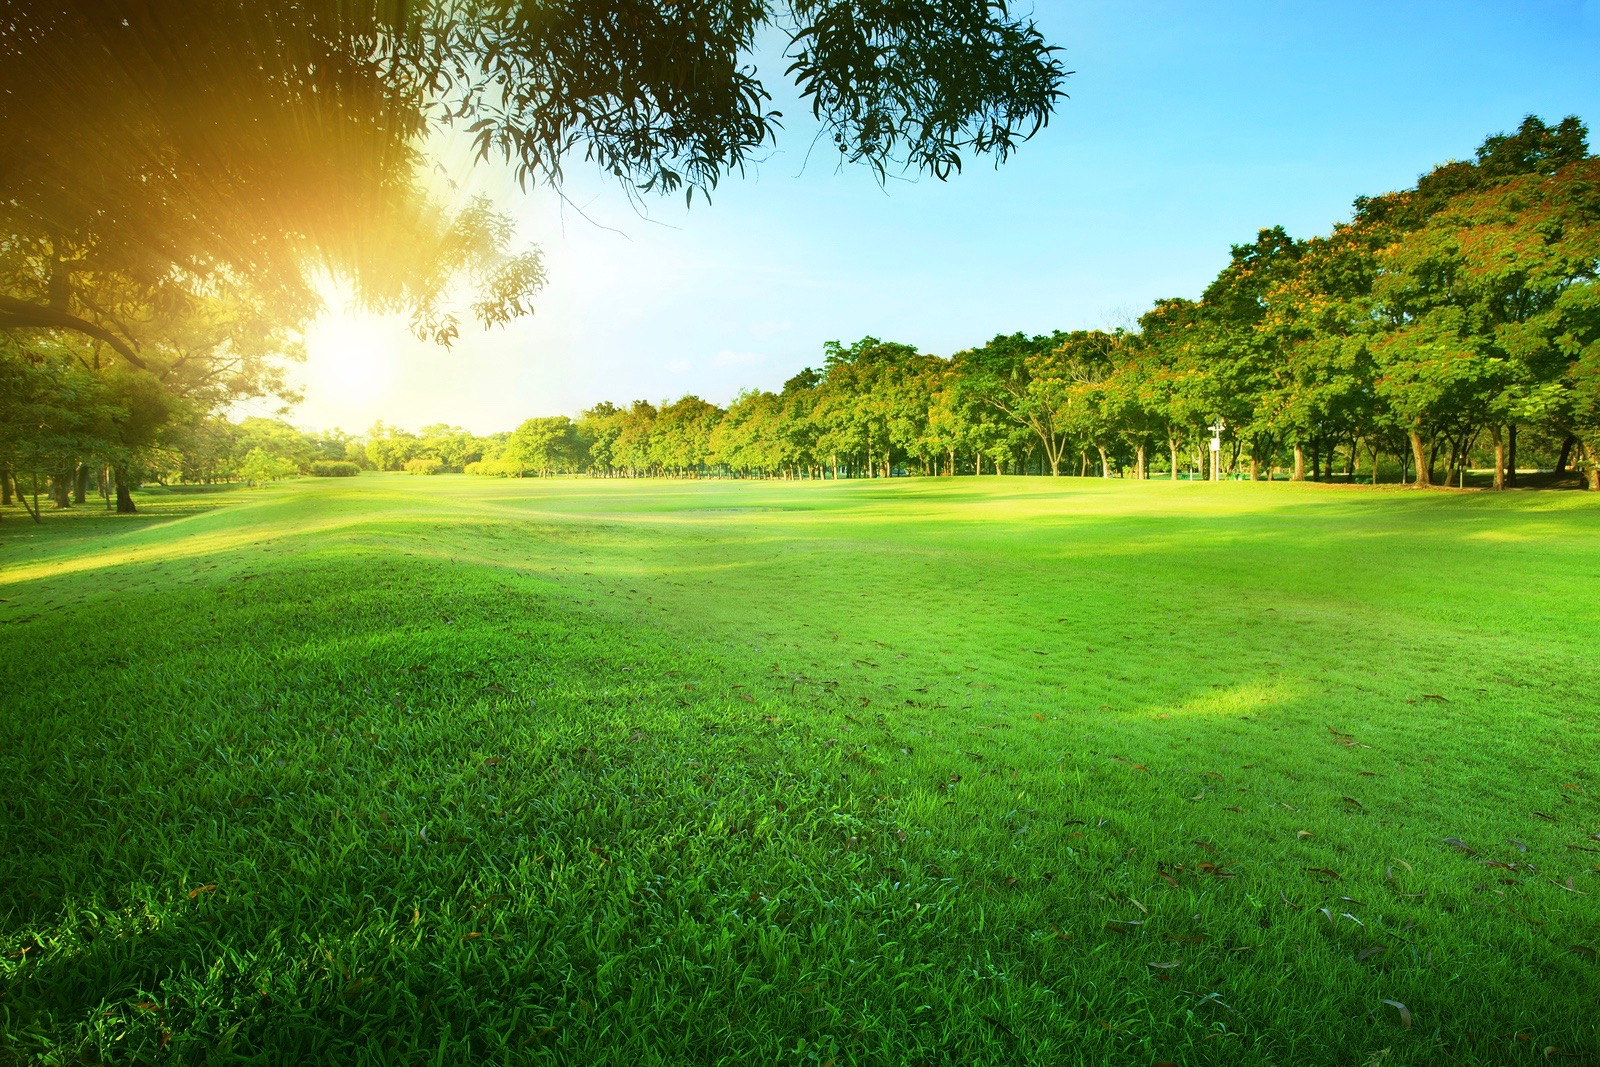 With more demand for green spaces, builders are starting to opt out for golf course and include more parks.